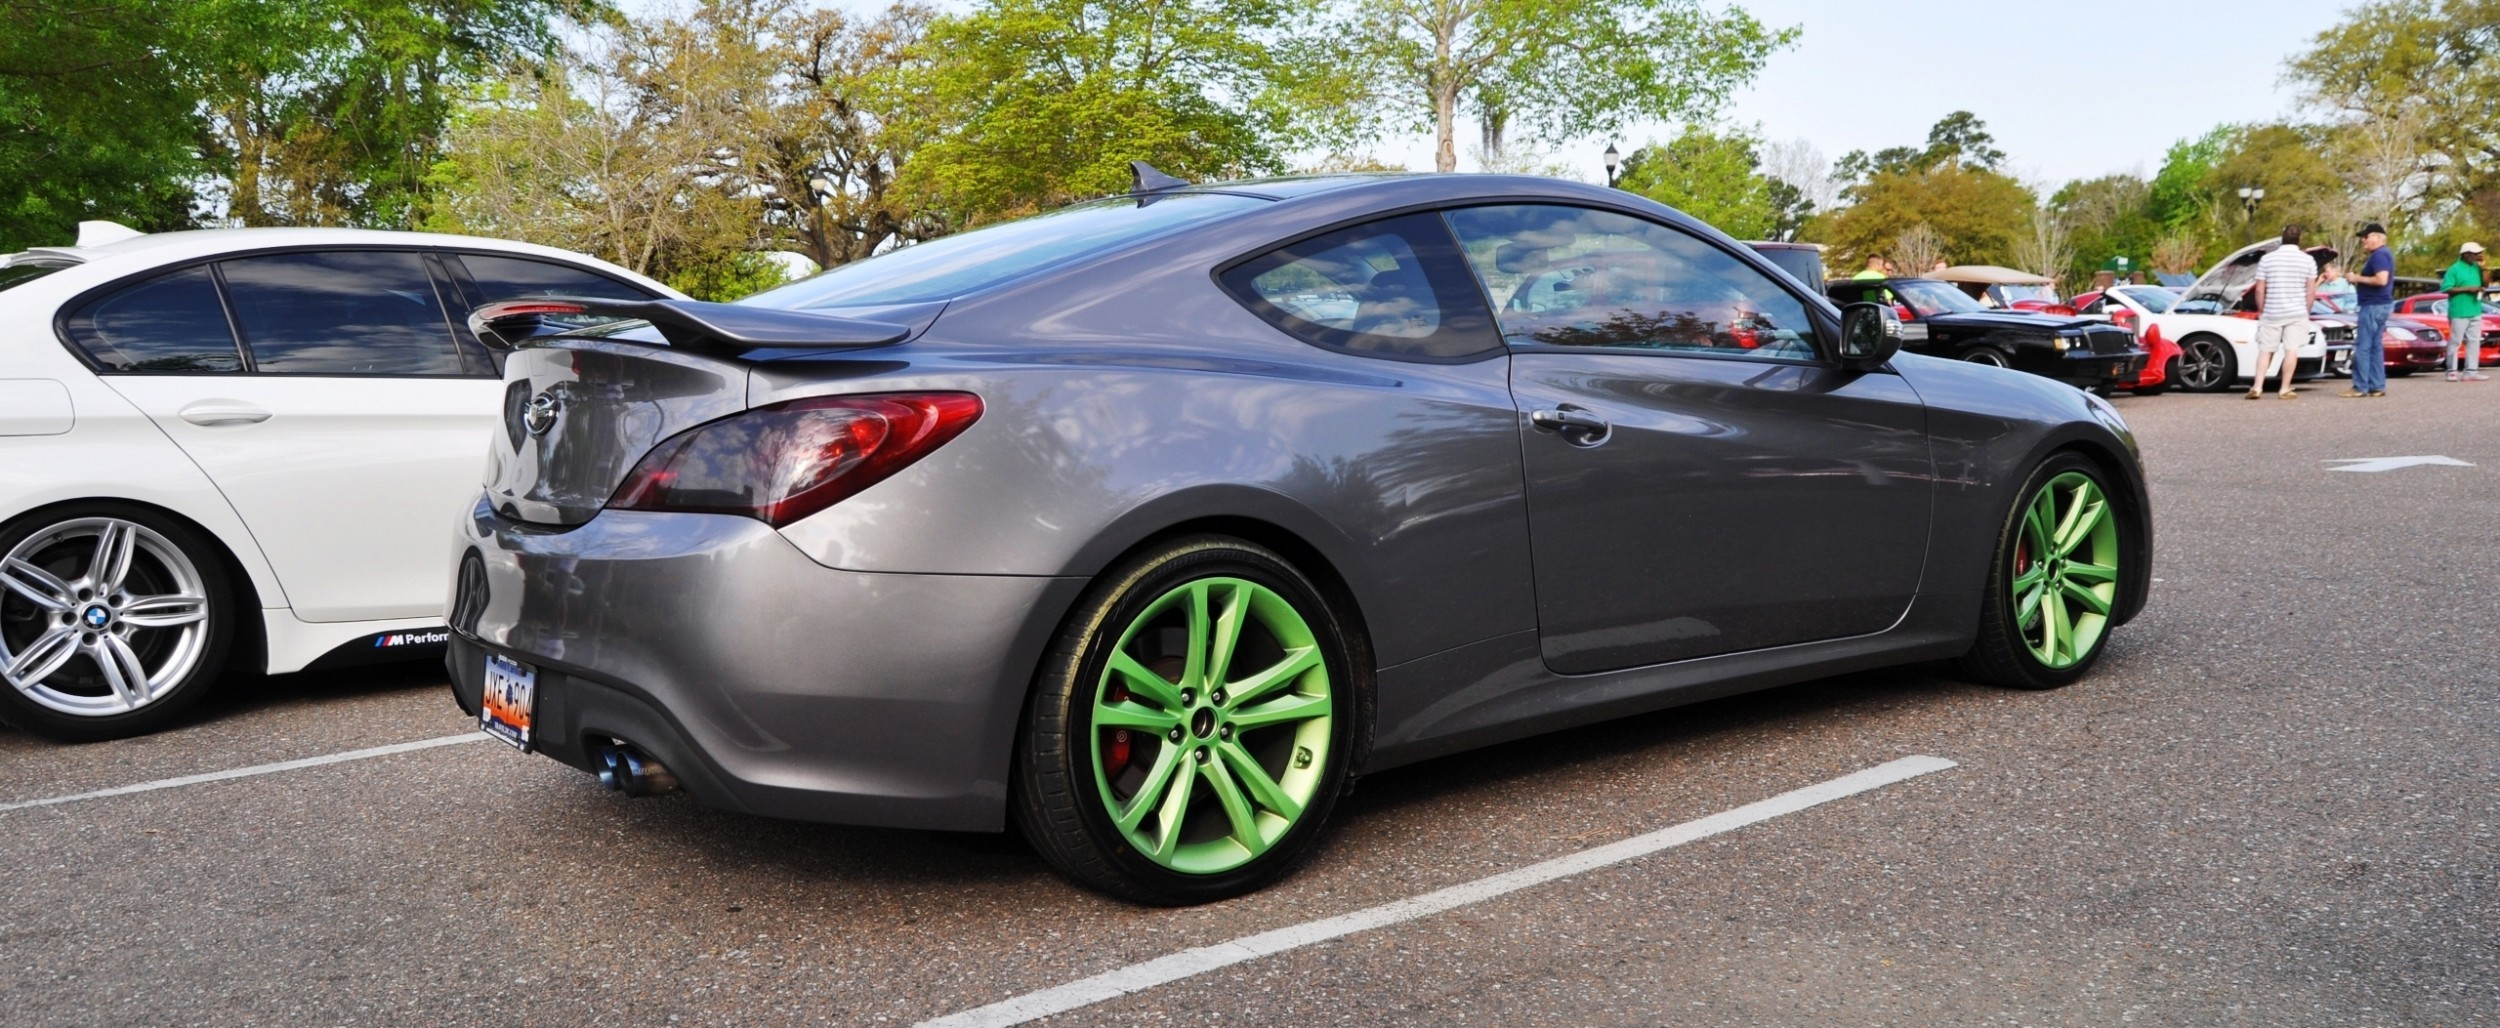 2014 hyundai genesis coupe 3 6 r spec at cars coffee. Black Bedroom Furniture Sets. Home Design Ideas